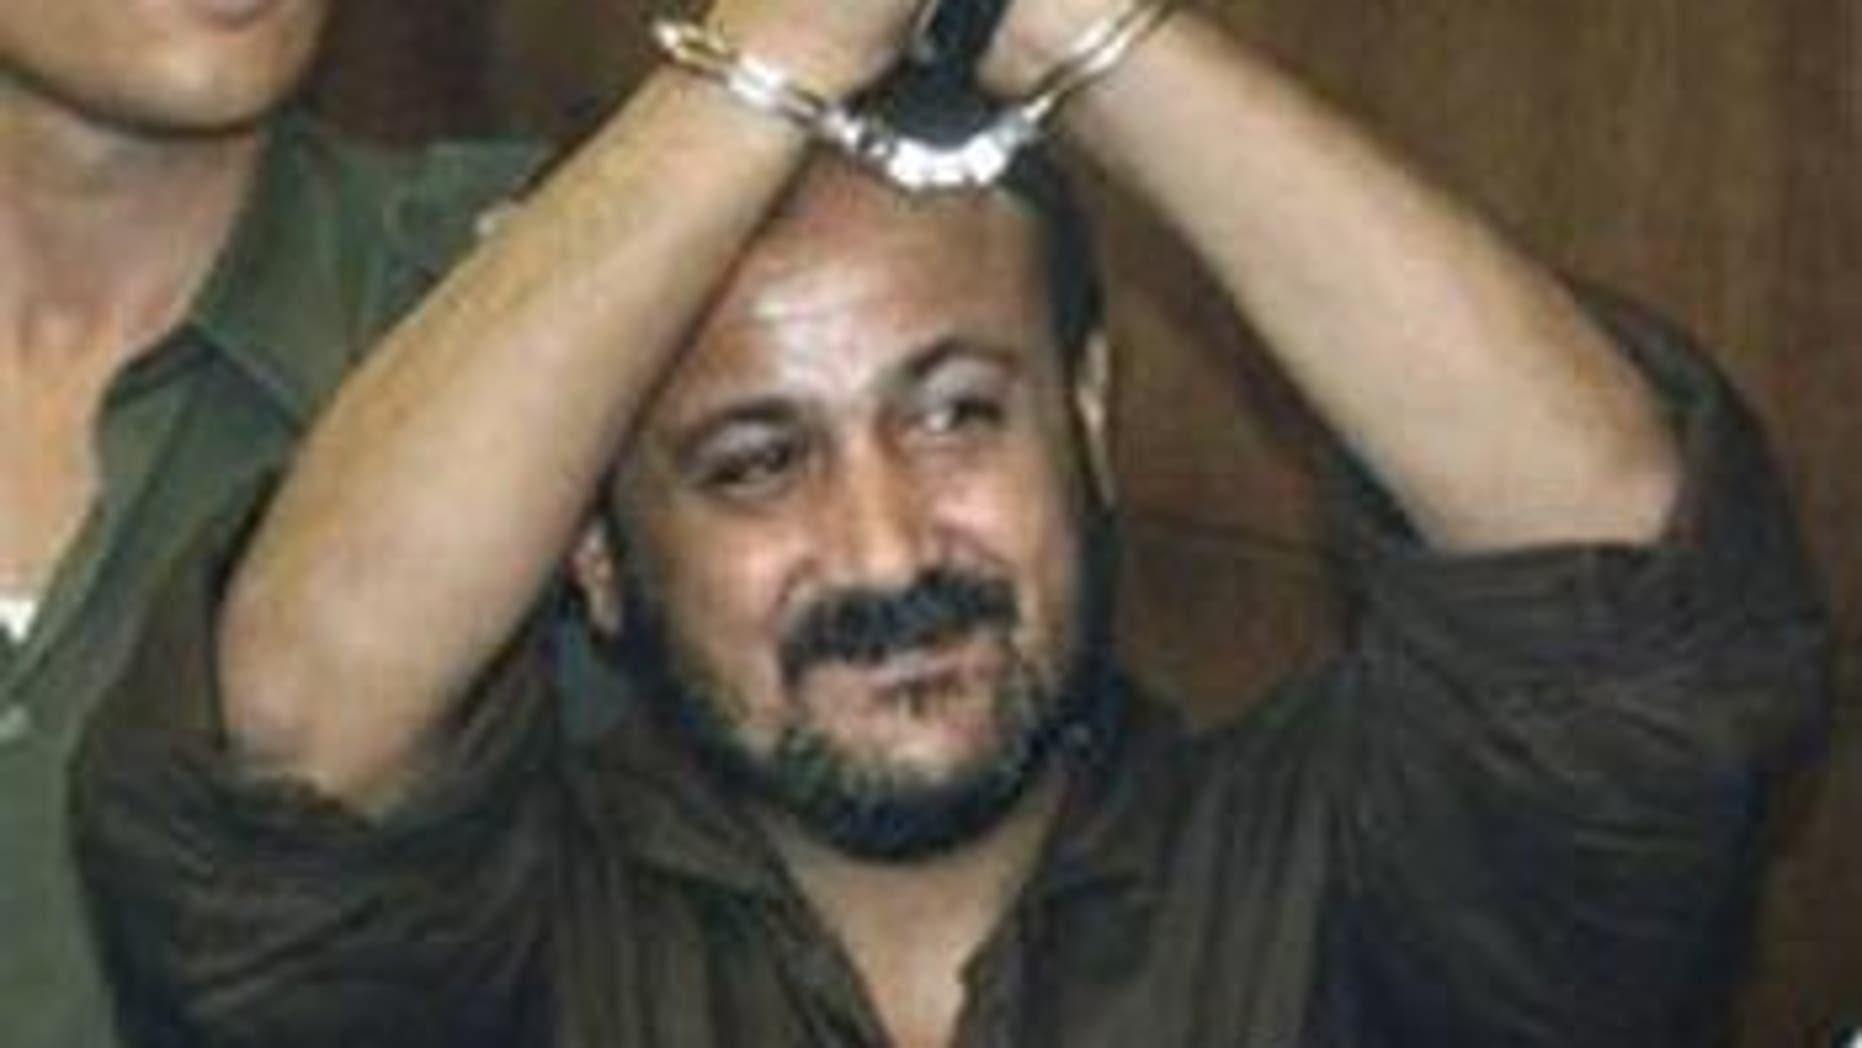 In this Aug. 14, 2002 file photo Marwan Barghouti raises his handcuffed hands in the air on the opening day of his trial at Tel Aviv's District Court